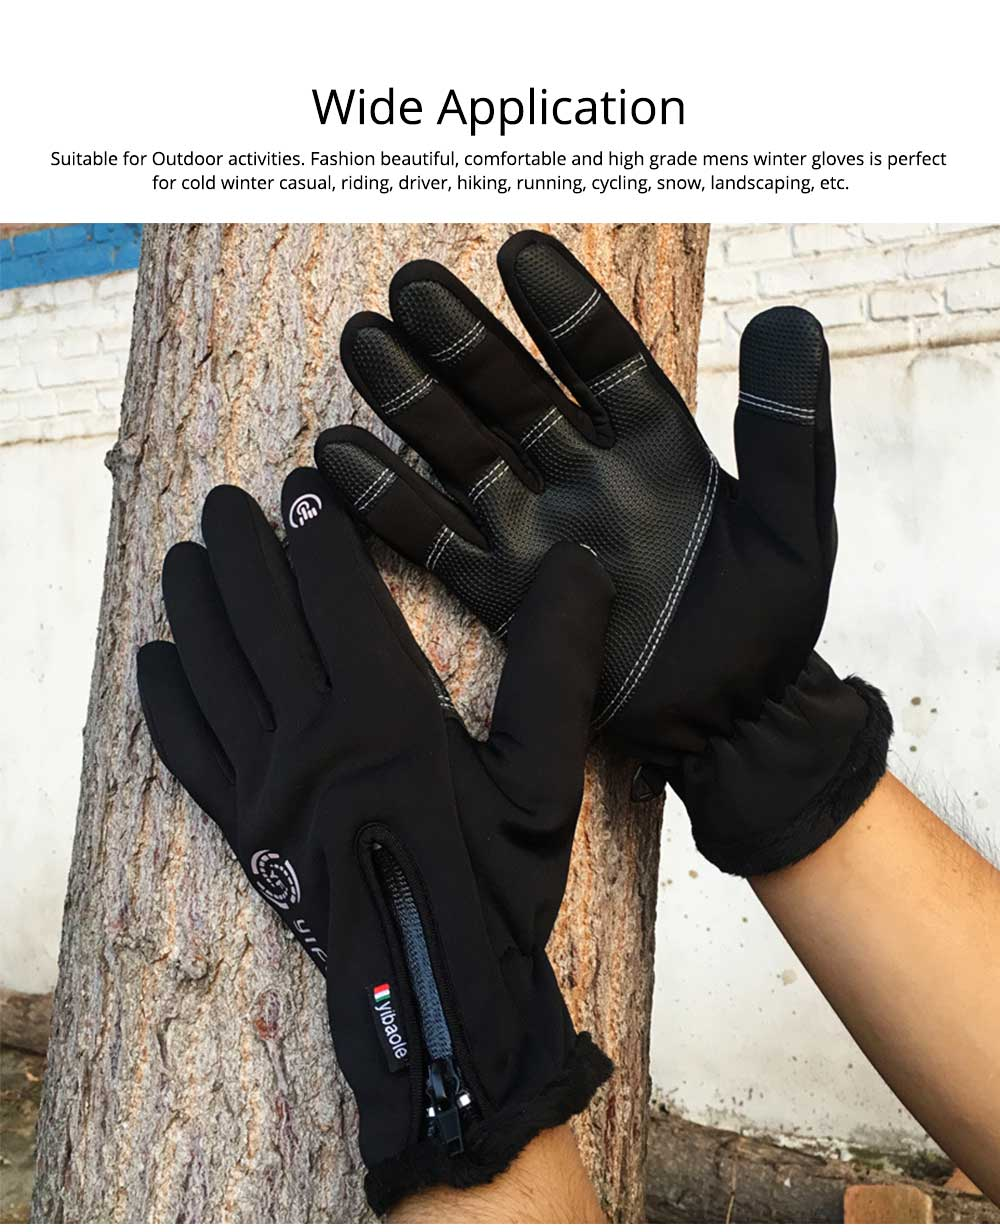 Winter Gloves Warm Waterproof Anti-wind Touch Screen Gloves for Running Hiking Climbing Skiing for Men Women 1